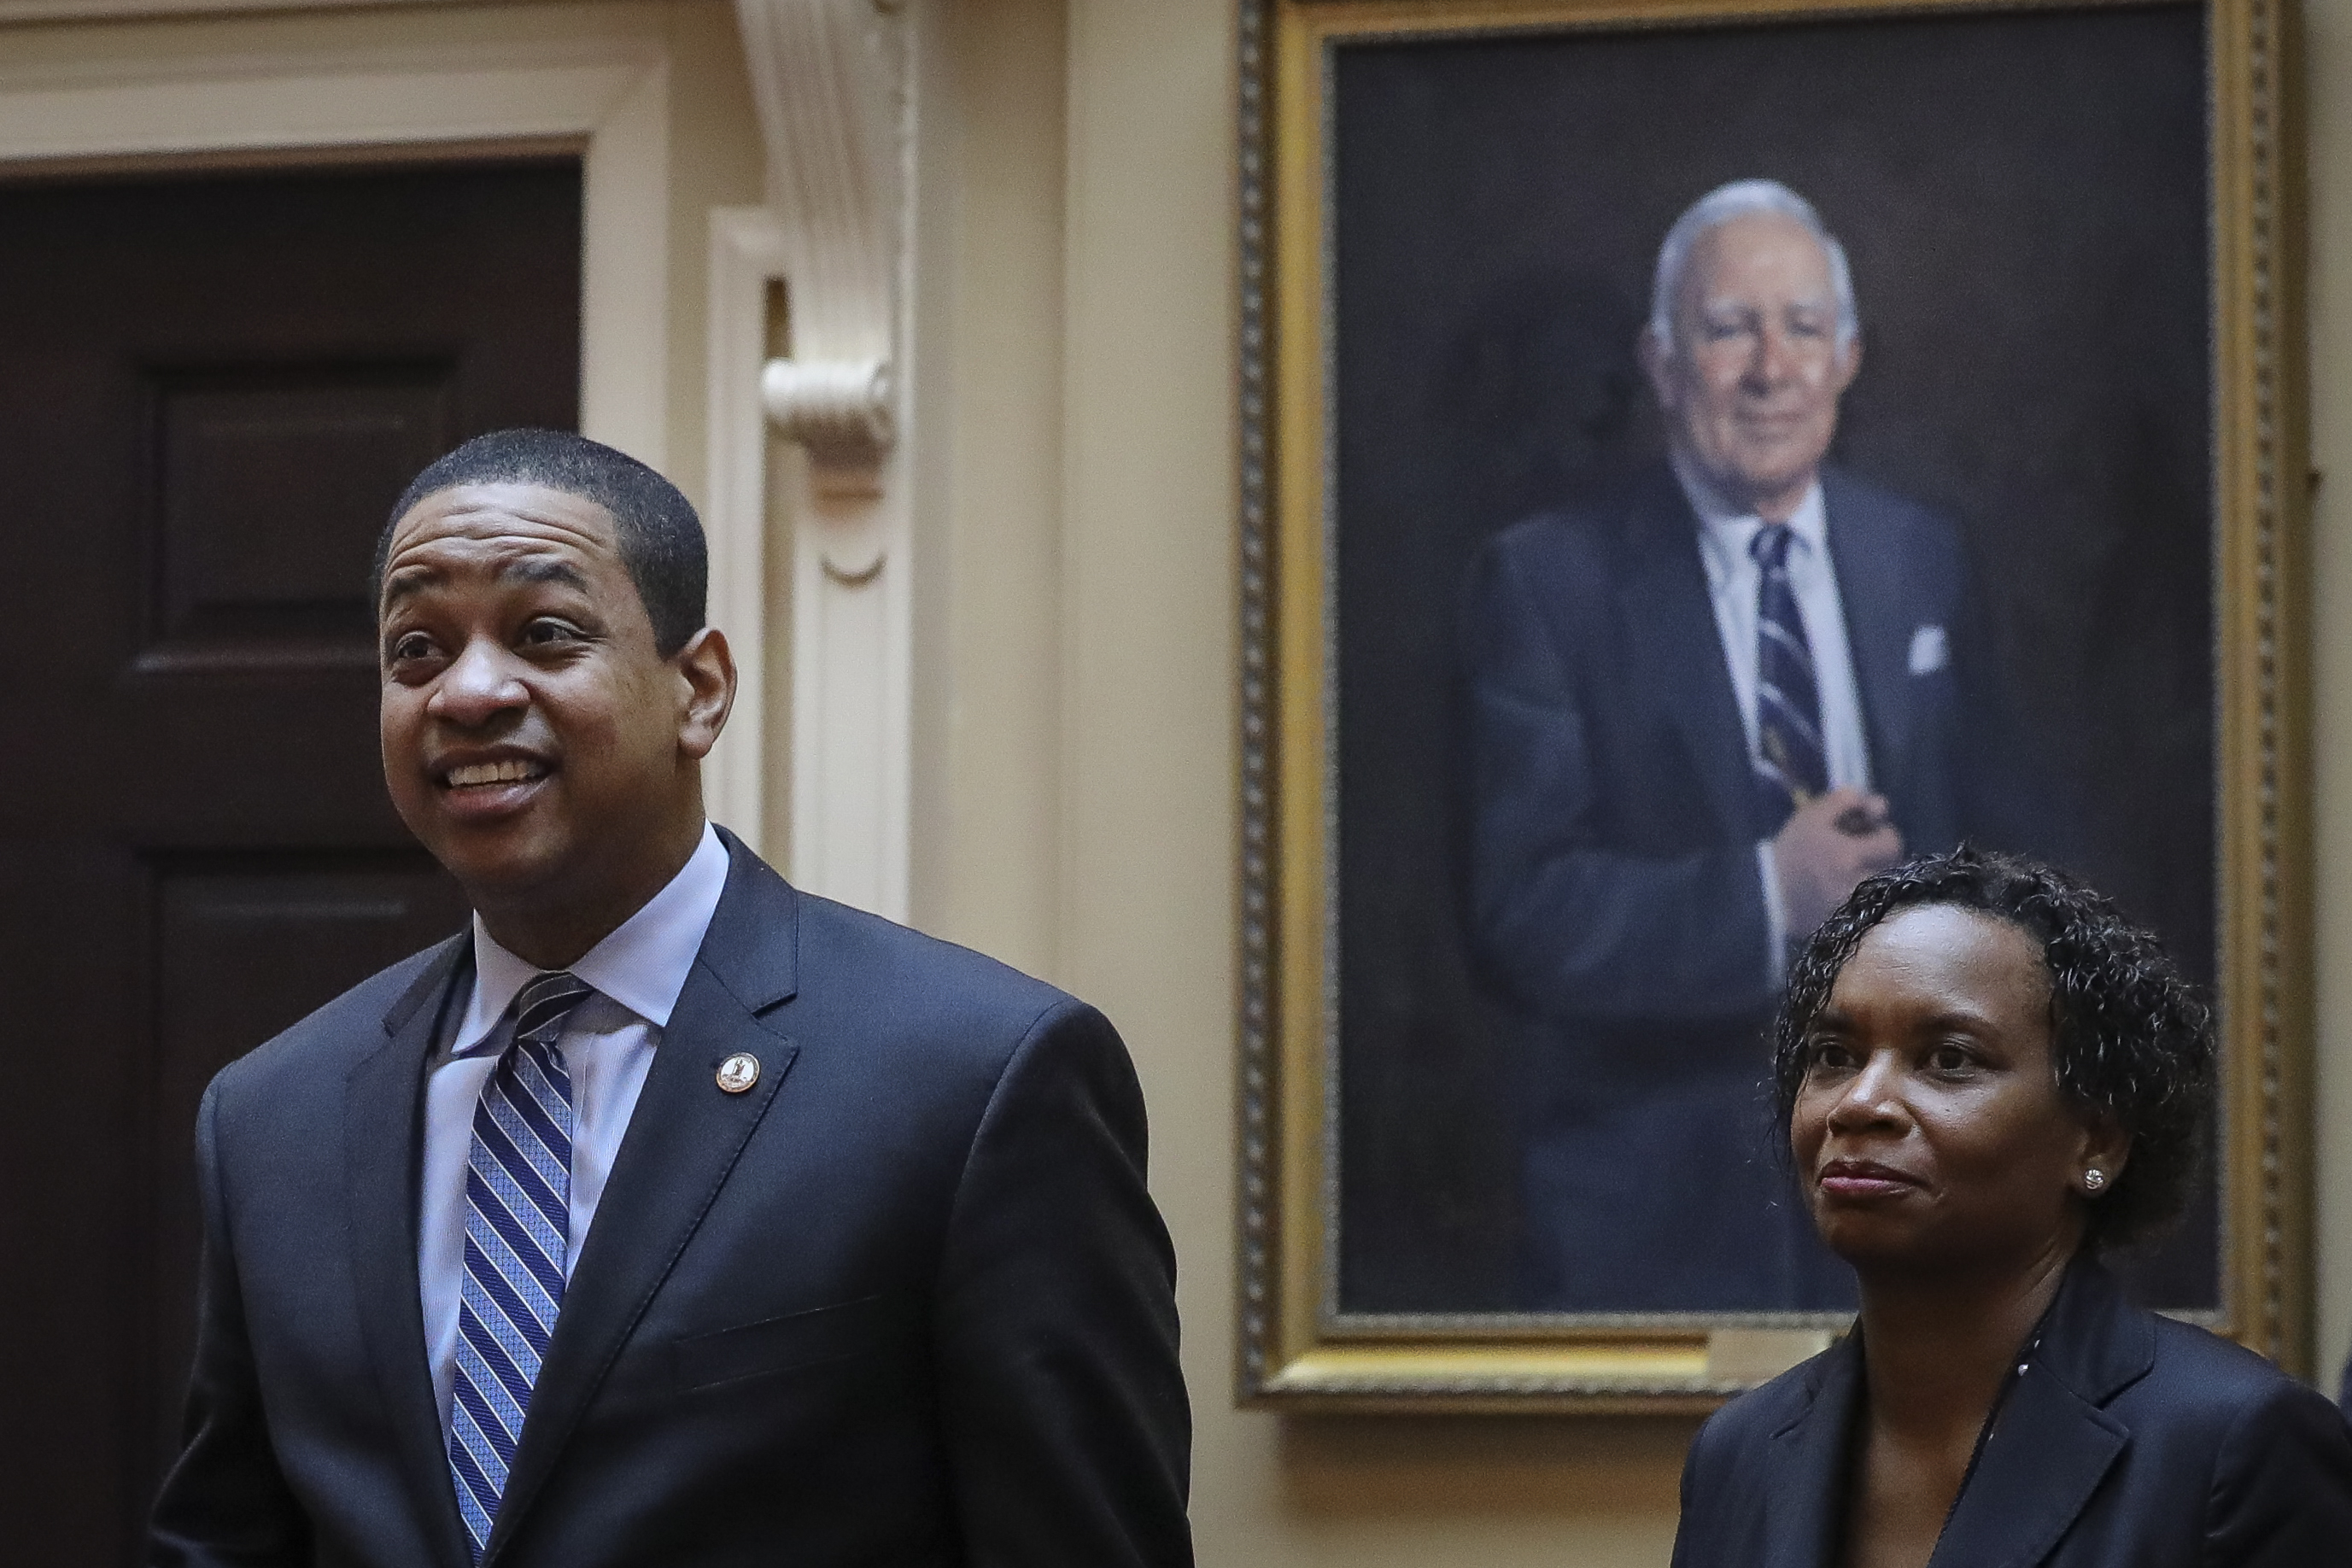 RICHMOND, VA - FEBRUARY 08: Virginia Lt. Governor Justin Fairfax (L) arrives on the Senate floor at the Virginia State Capitol, February 8, 2019 in Richmond, Virginia. (Drew Angerer/Getty Images)